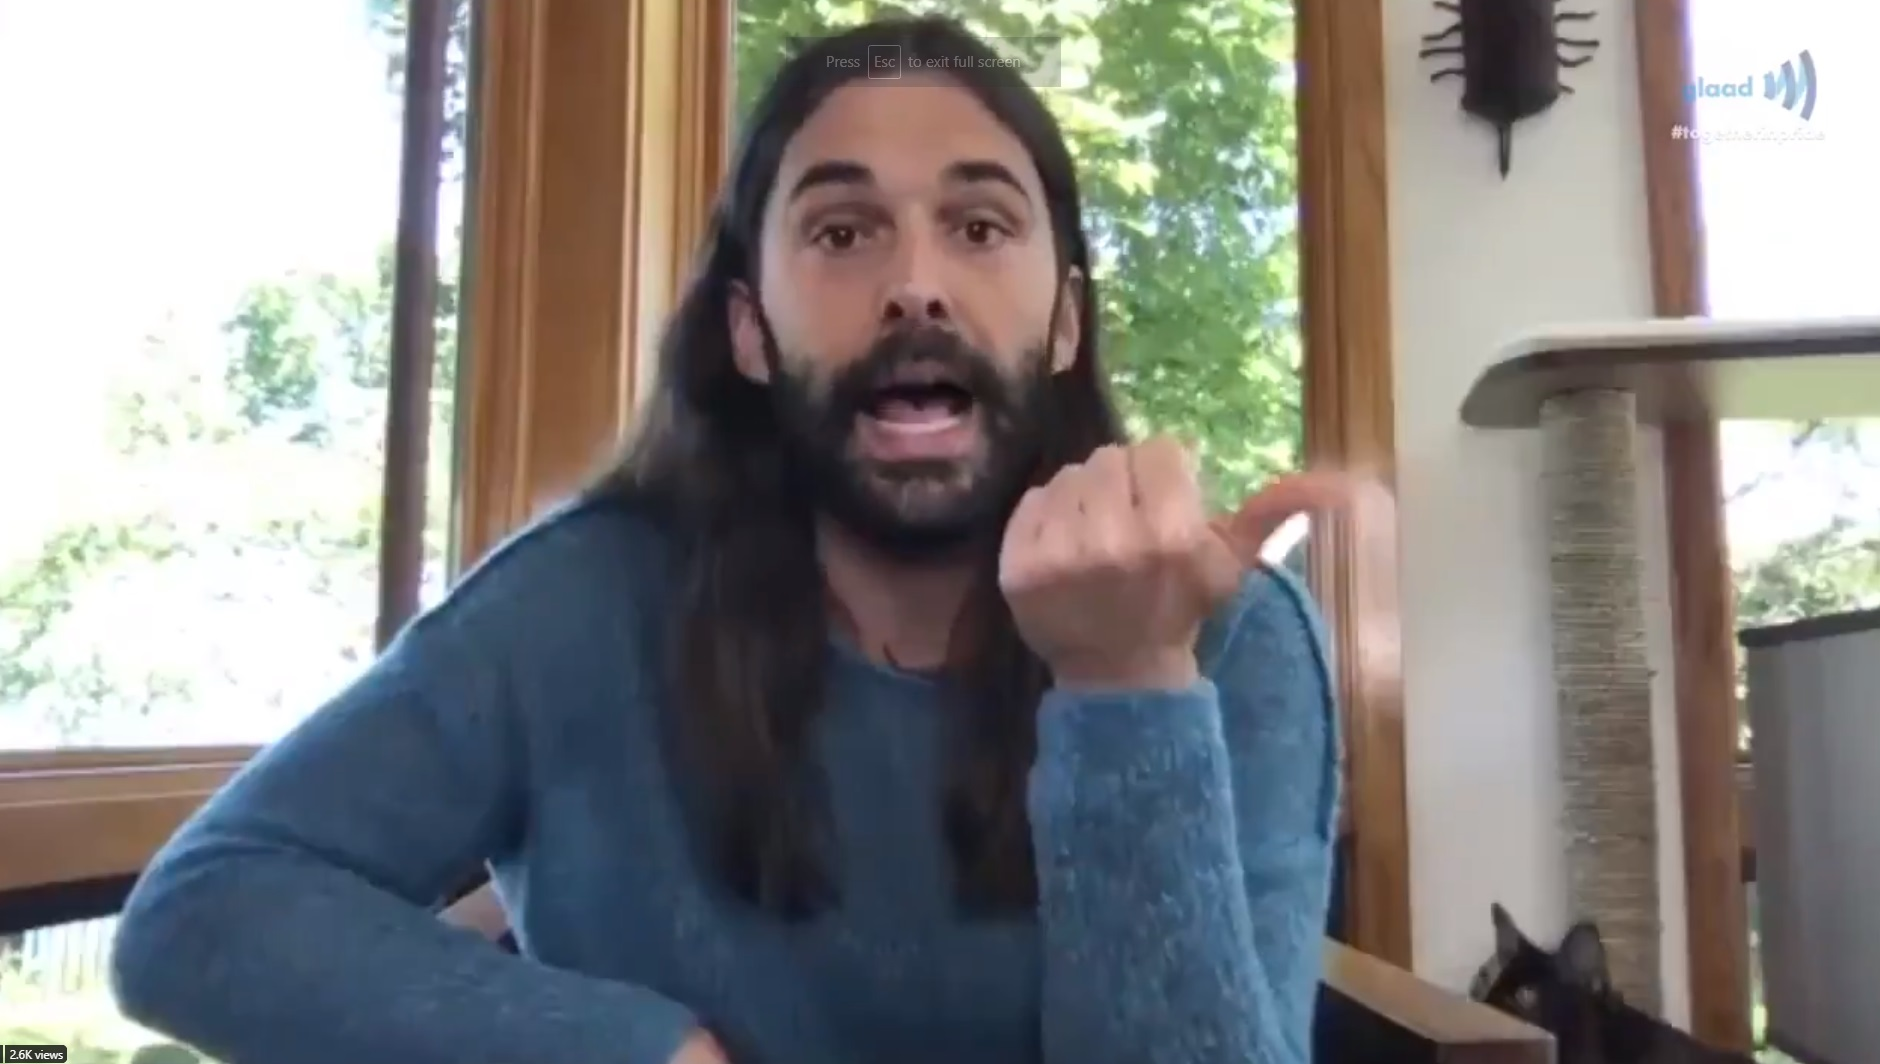 Jonathan Van Ness spoke to TV host Lilly Singh in a GLAAD live stream on Sunday.